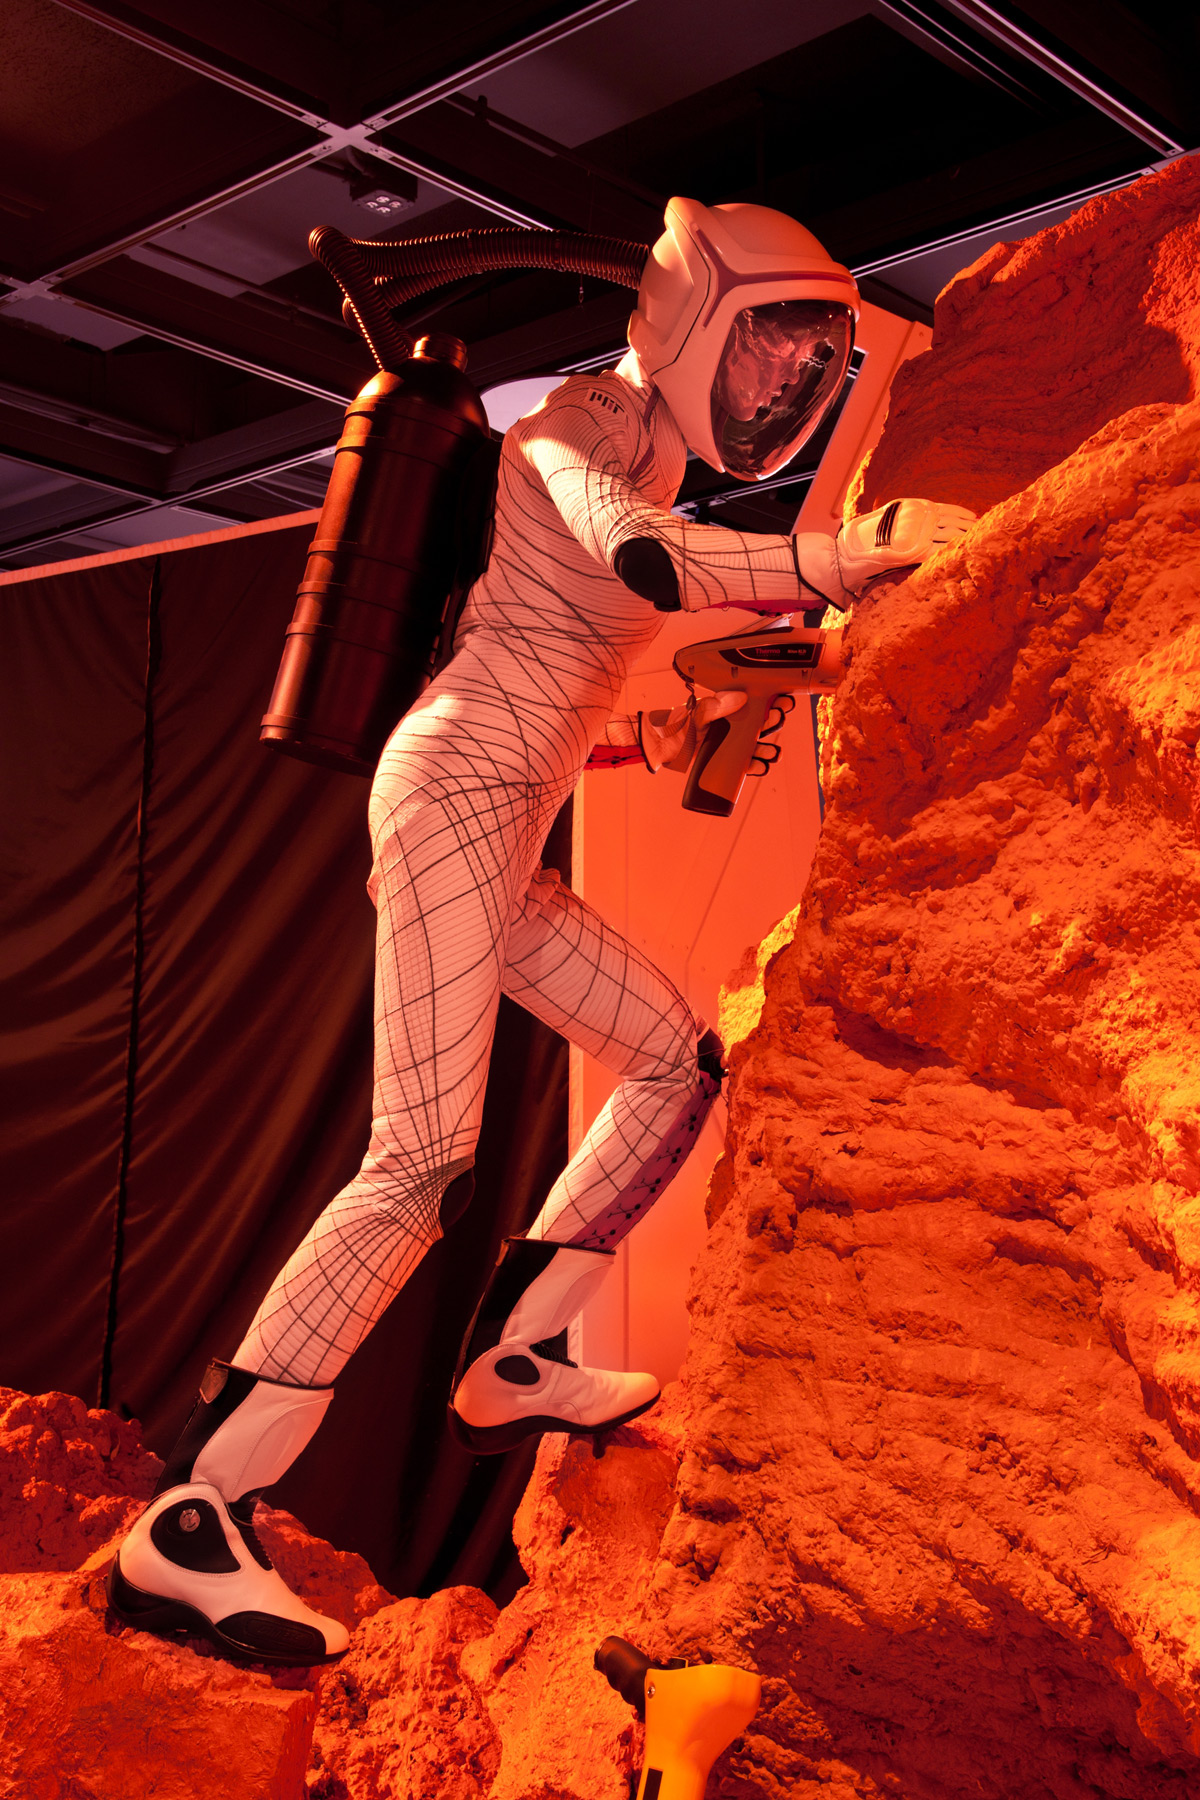 woman in tight space suit - photo #30